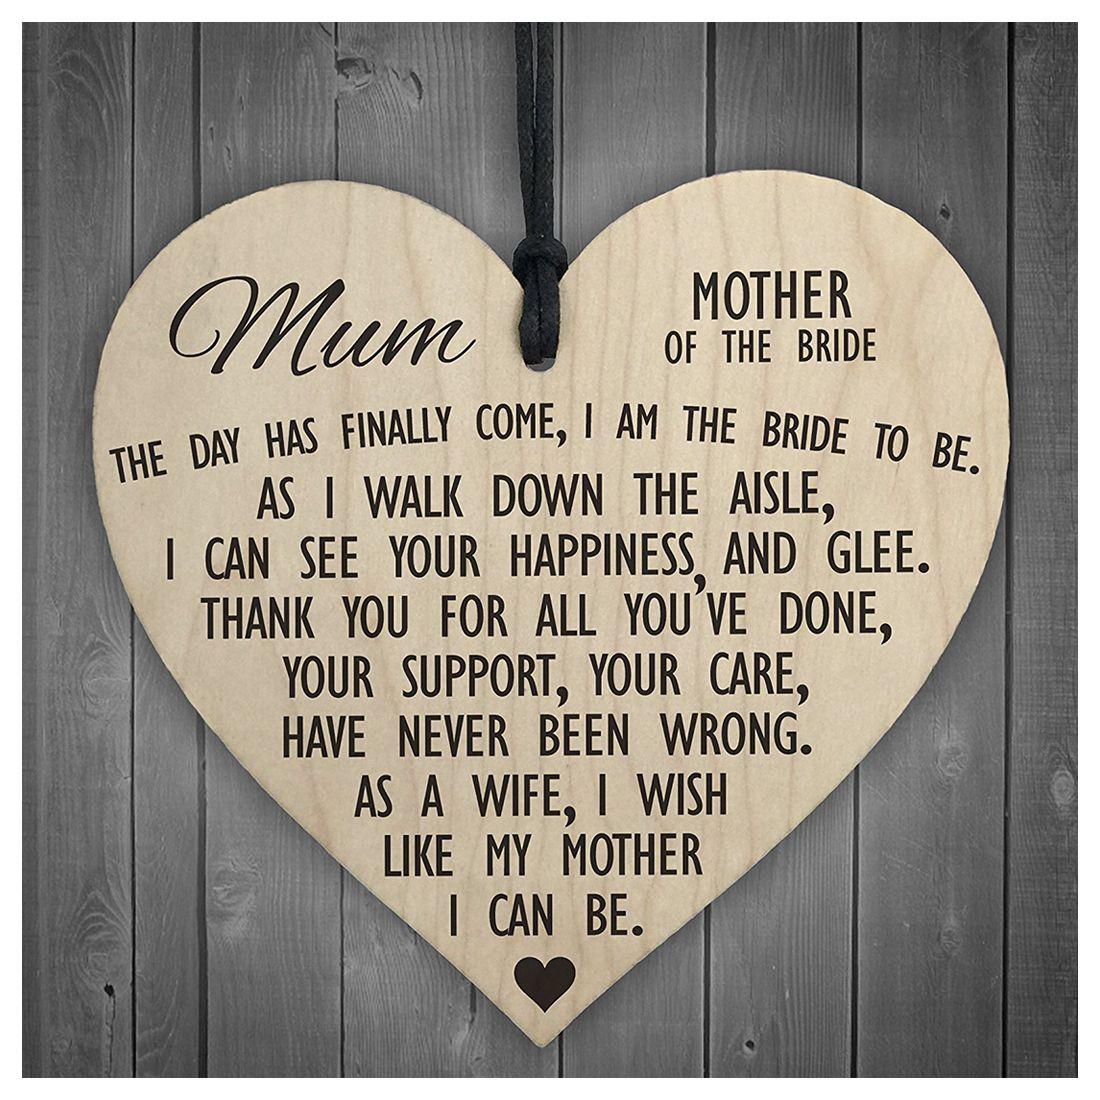 mother of the bride to be wooden hanging heart wedding plaque mum